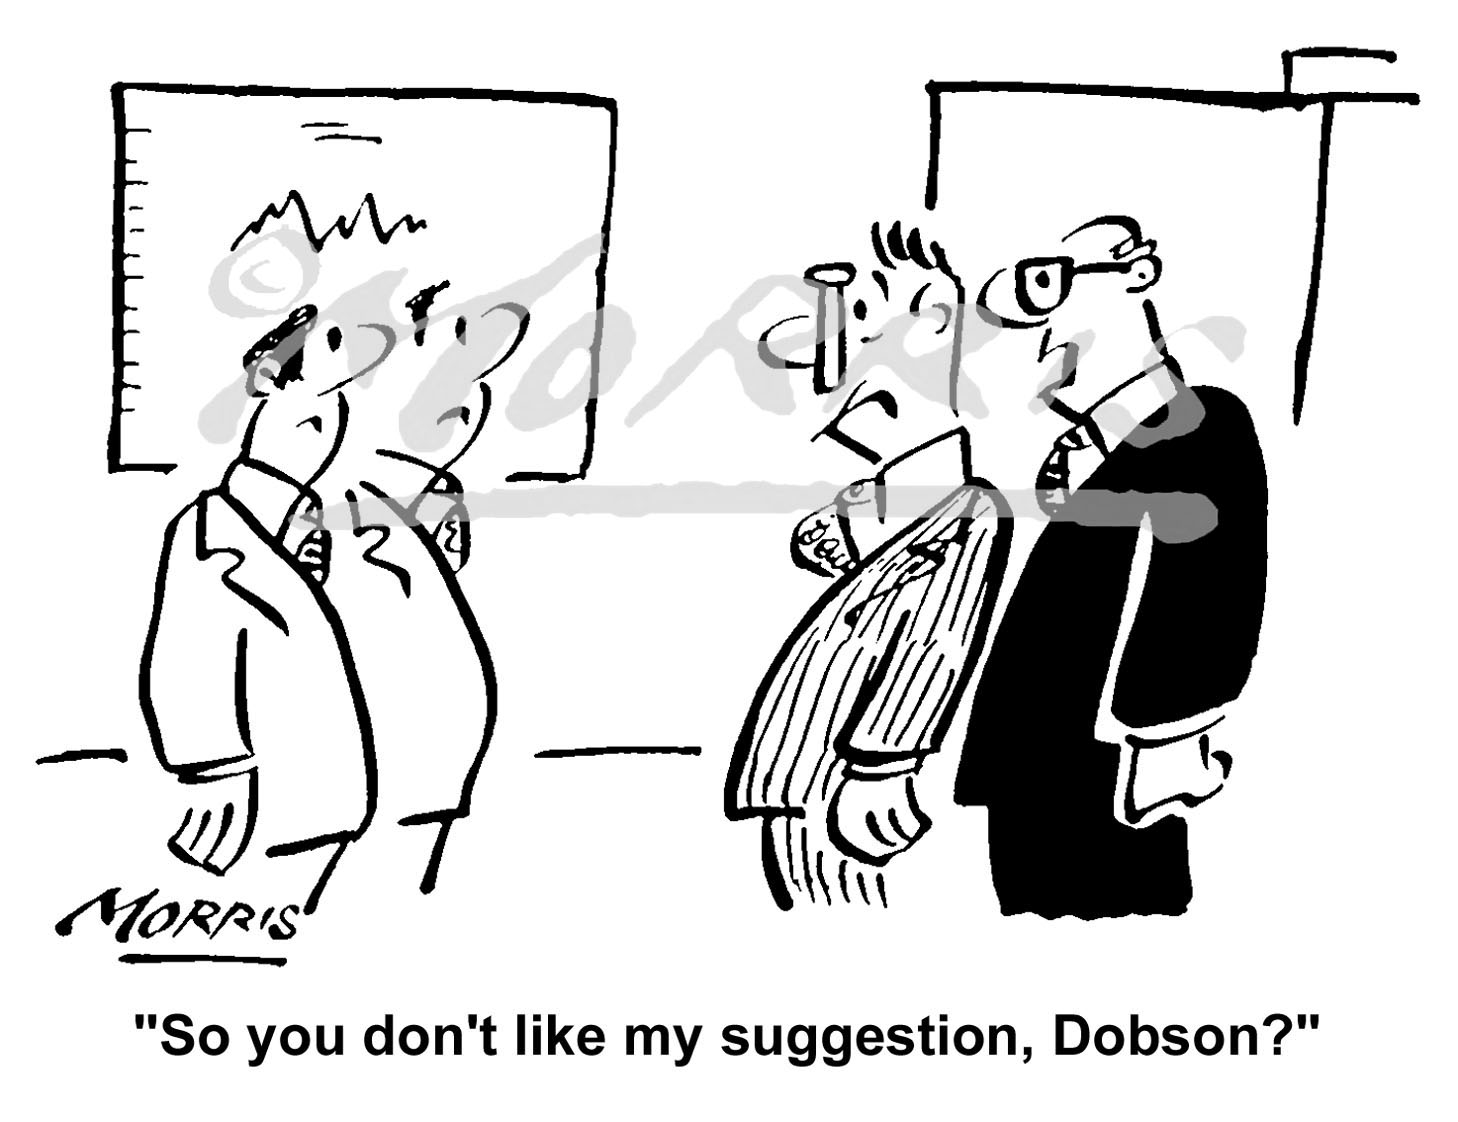 Manager cartoon, boss comic, employee cartoon Ref: 1675bw